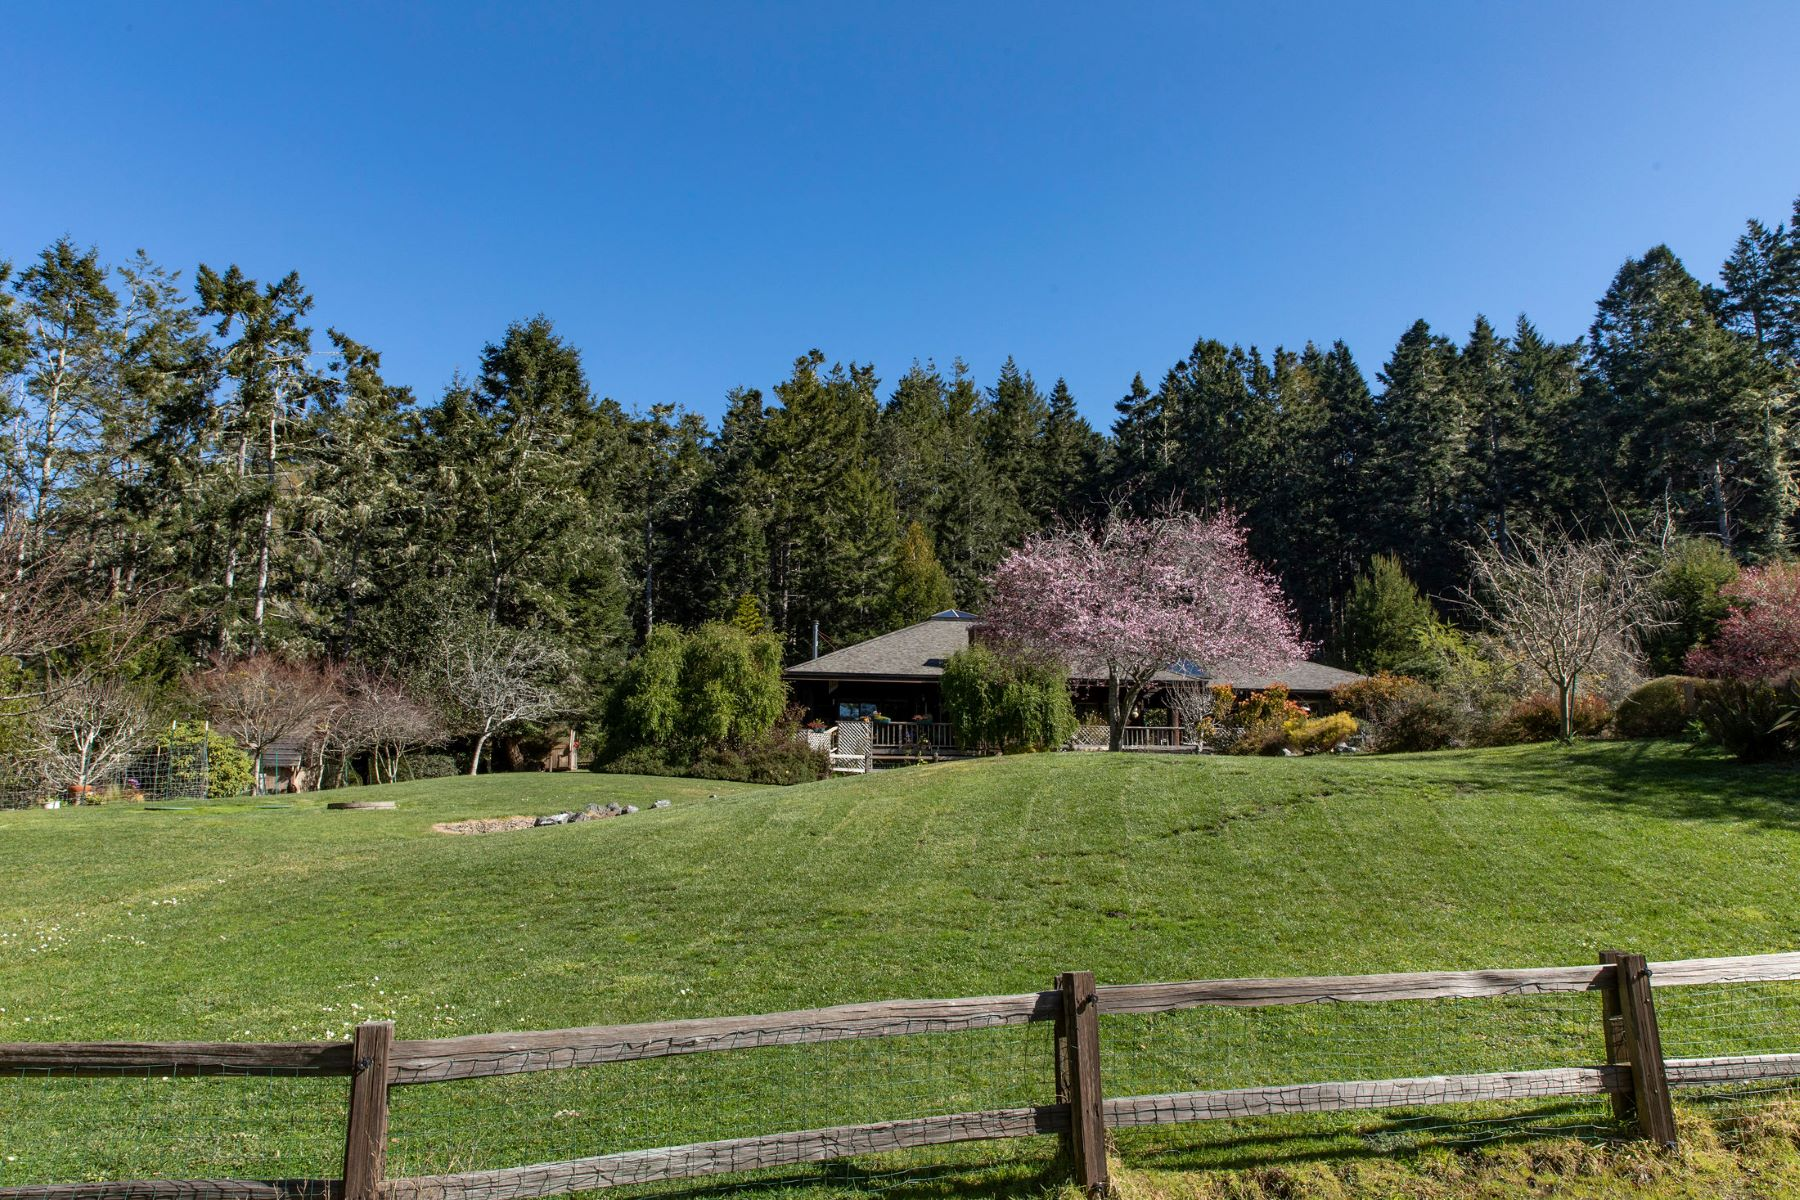 Property 为 销售 在 Swallow Pond 44650 Raven Lane Mendocino, 加利福尼亚州 95460 美国